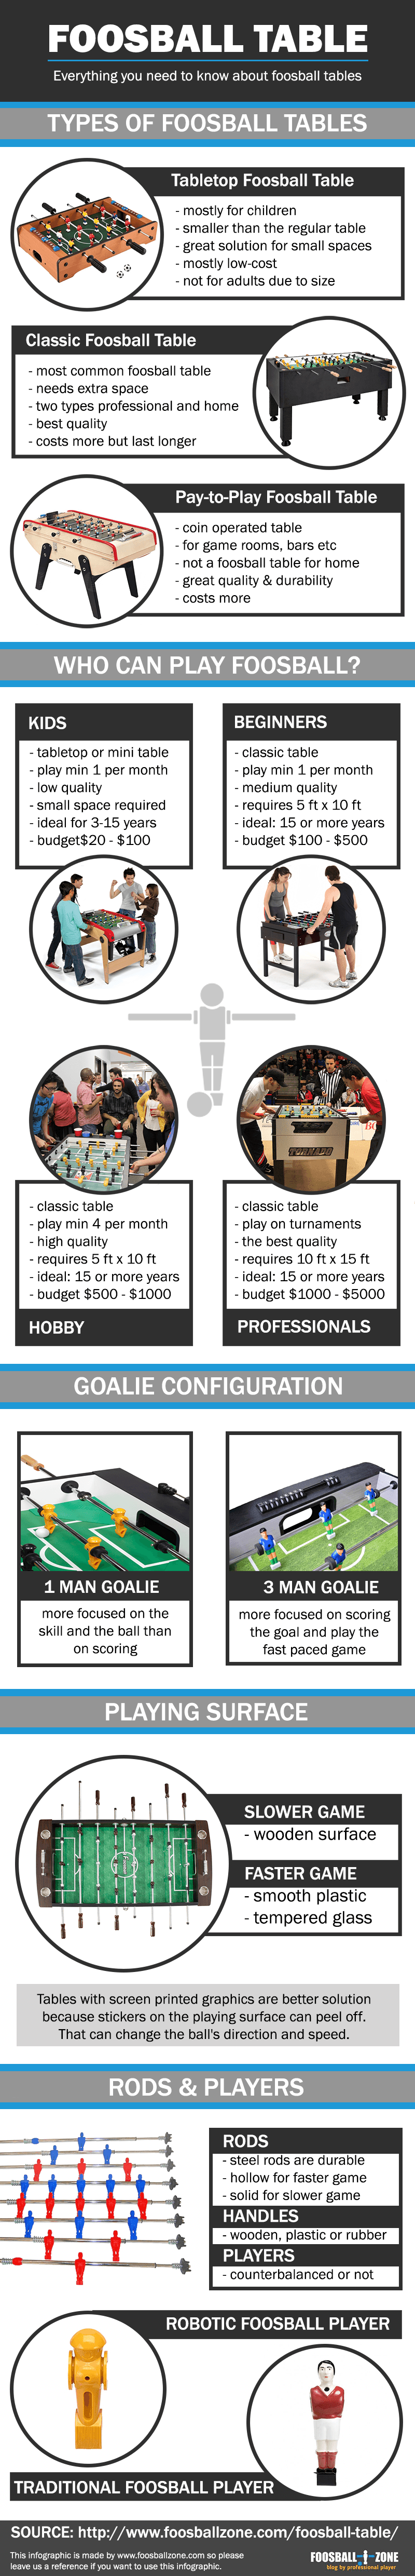 foosball table infographic 800